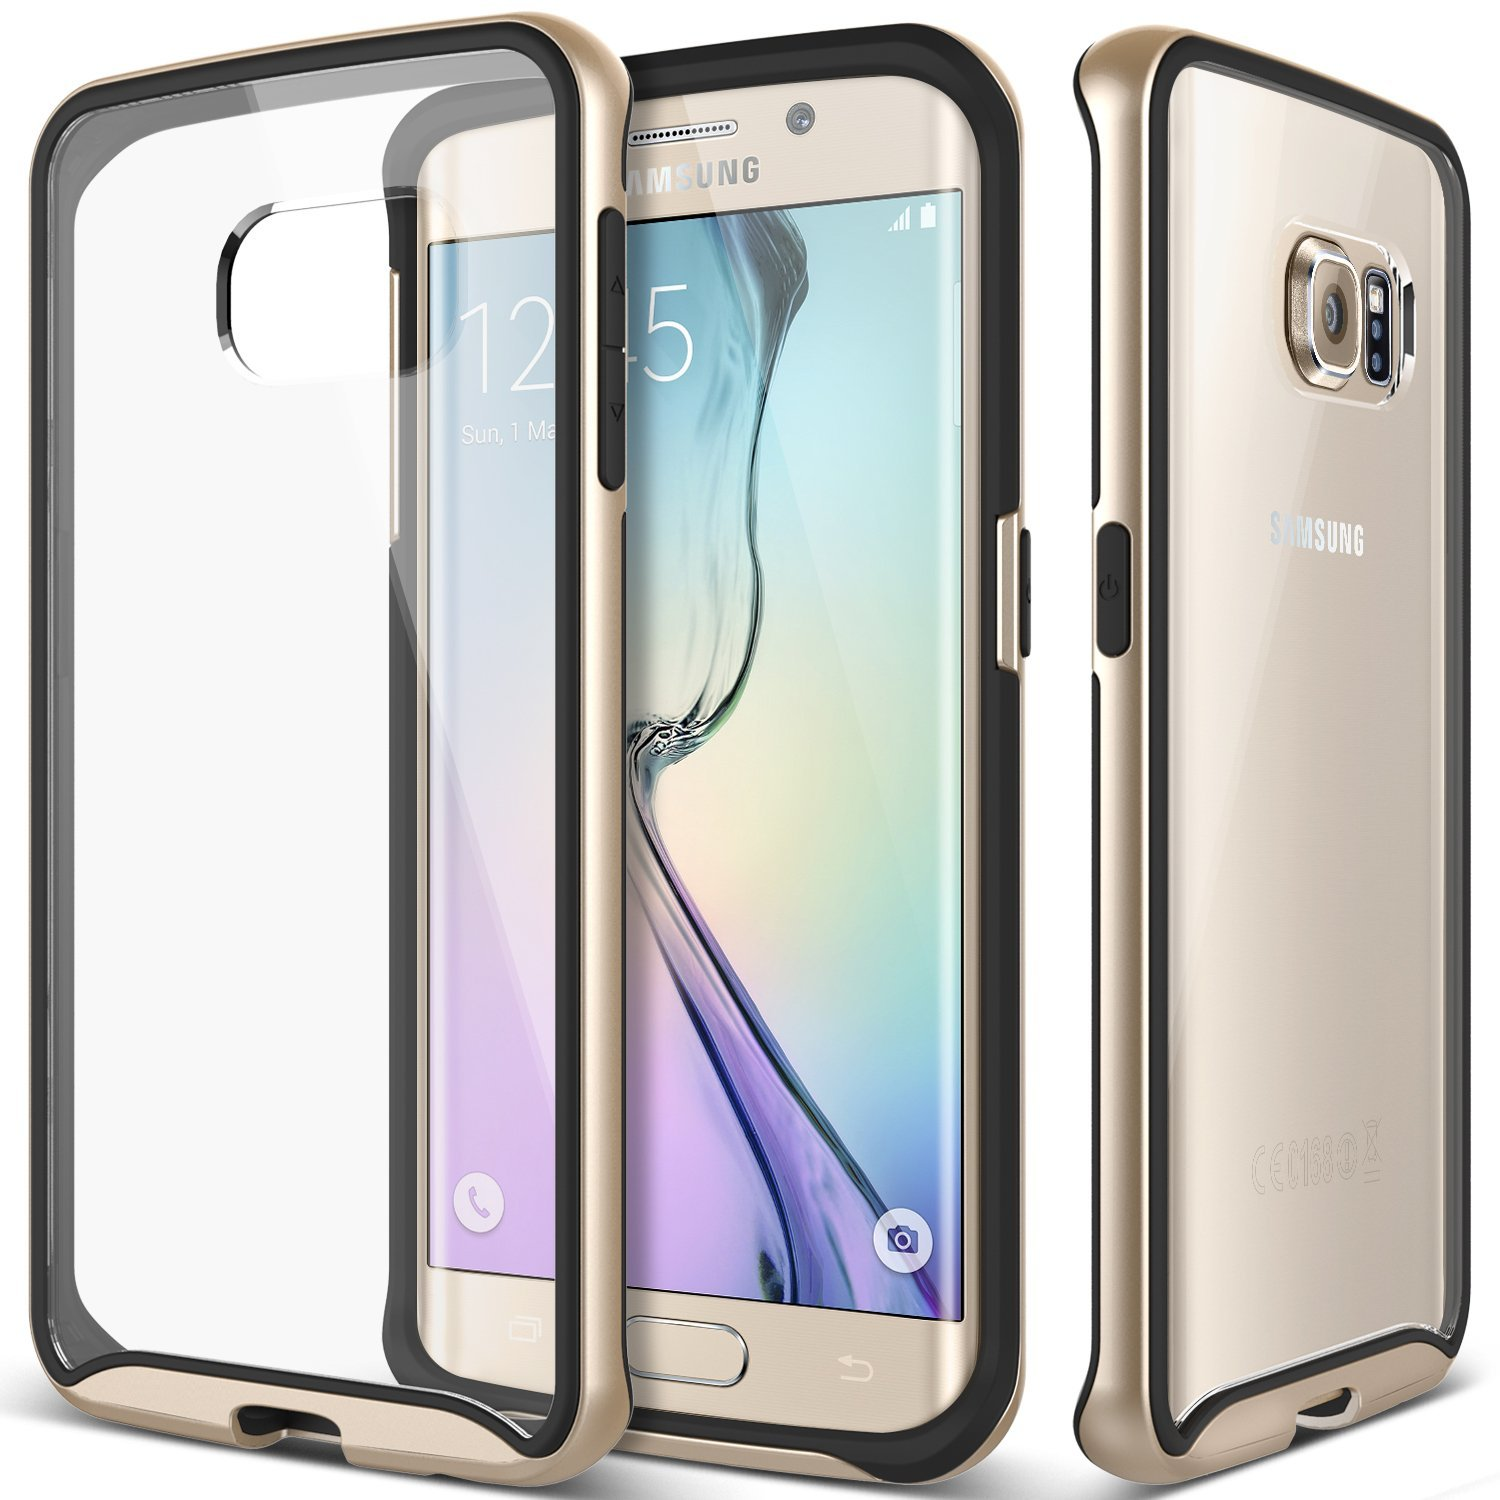 8b9ba1a16 Galaxy S6 Edge Scratch Resistant Clearback Case Gold